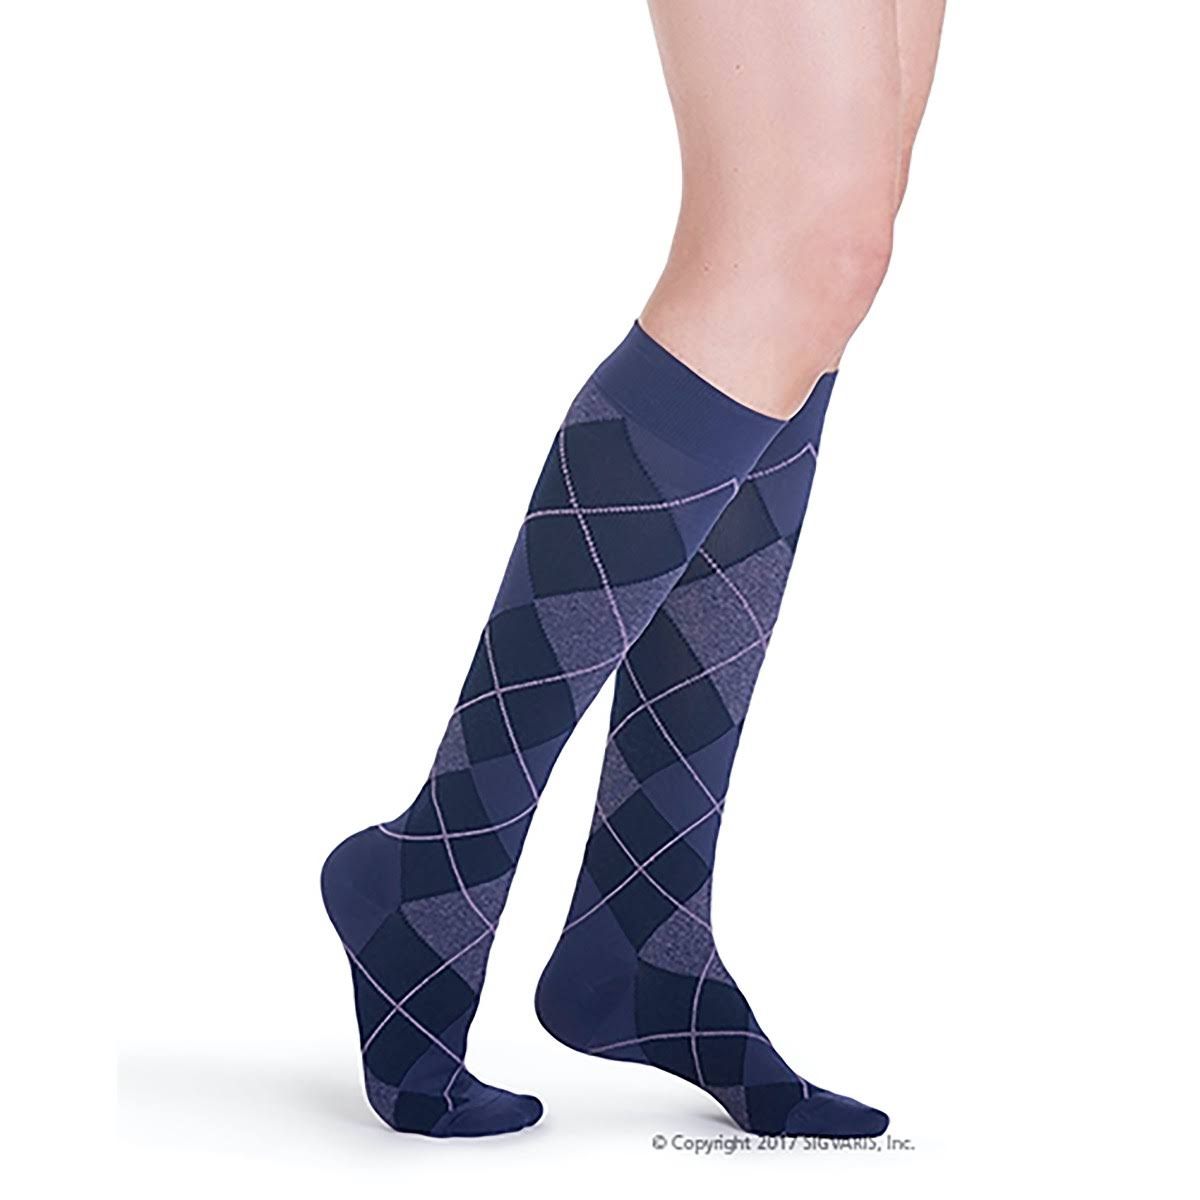 Sigvaris 143c Womens Microfiber Shades Calf High Compression Socks - Purple Argyle Size A